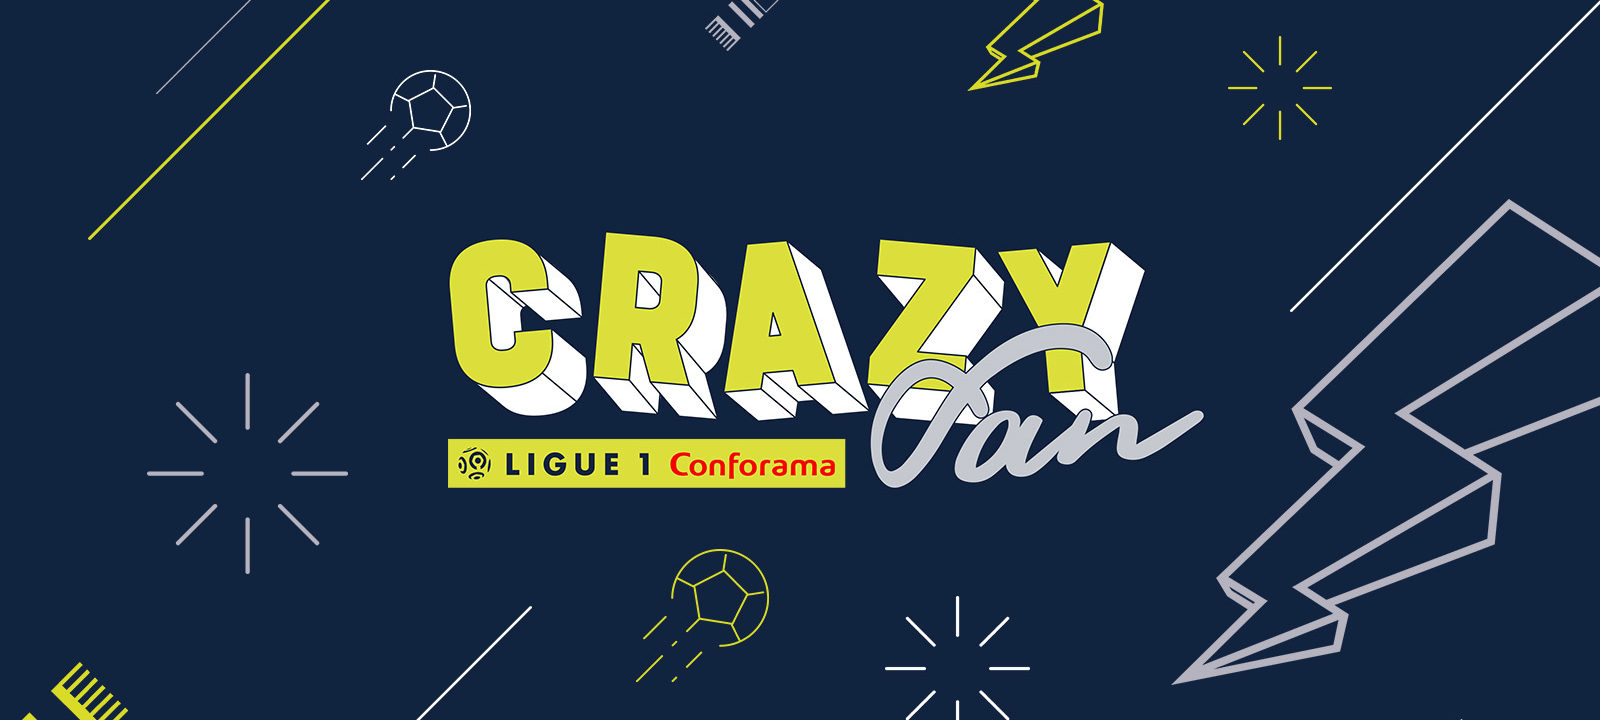 Projet_ouverture_MAIN_crazy_fan_Ligue_1_Conforama_LFP_Ligue_de_football_professionnel